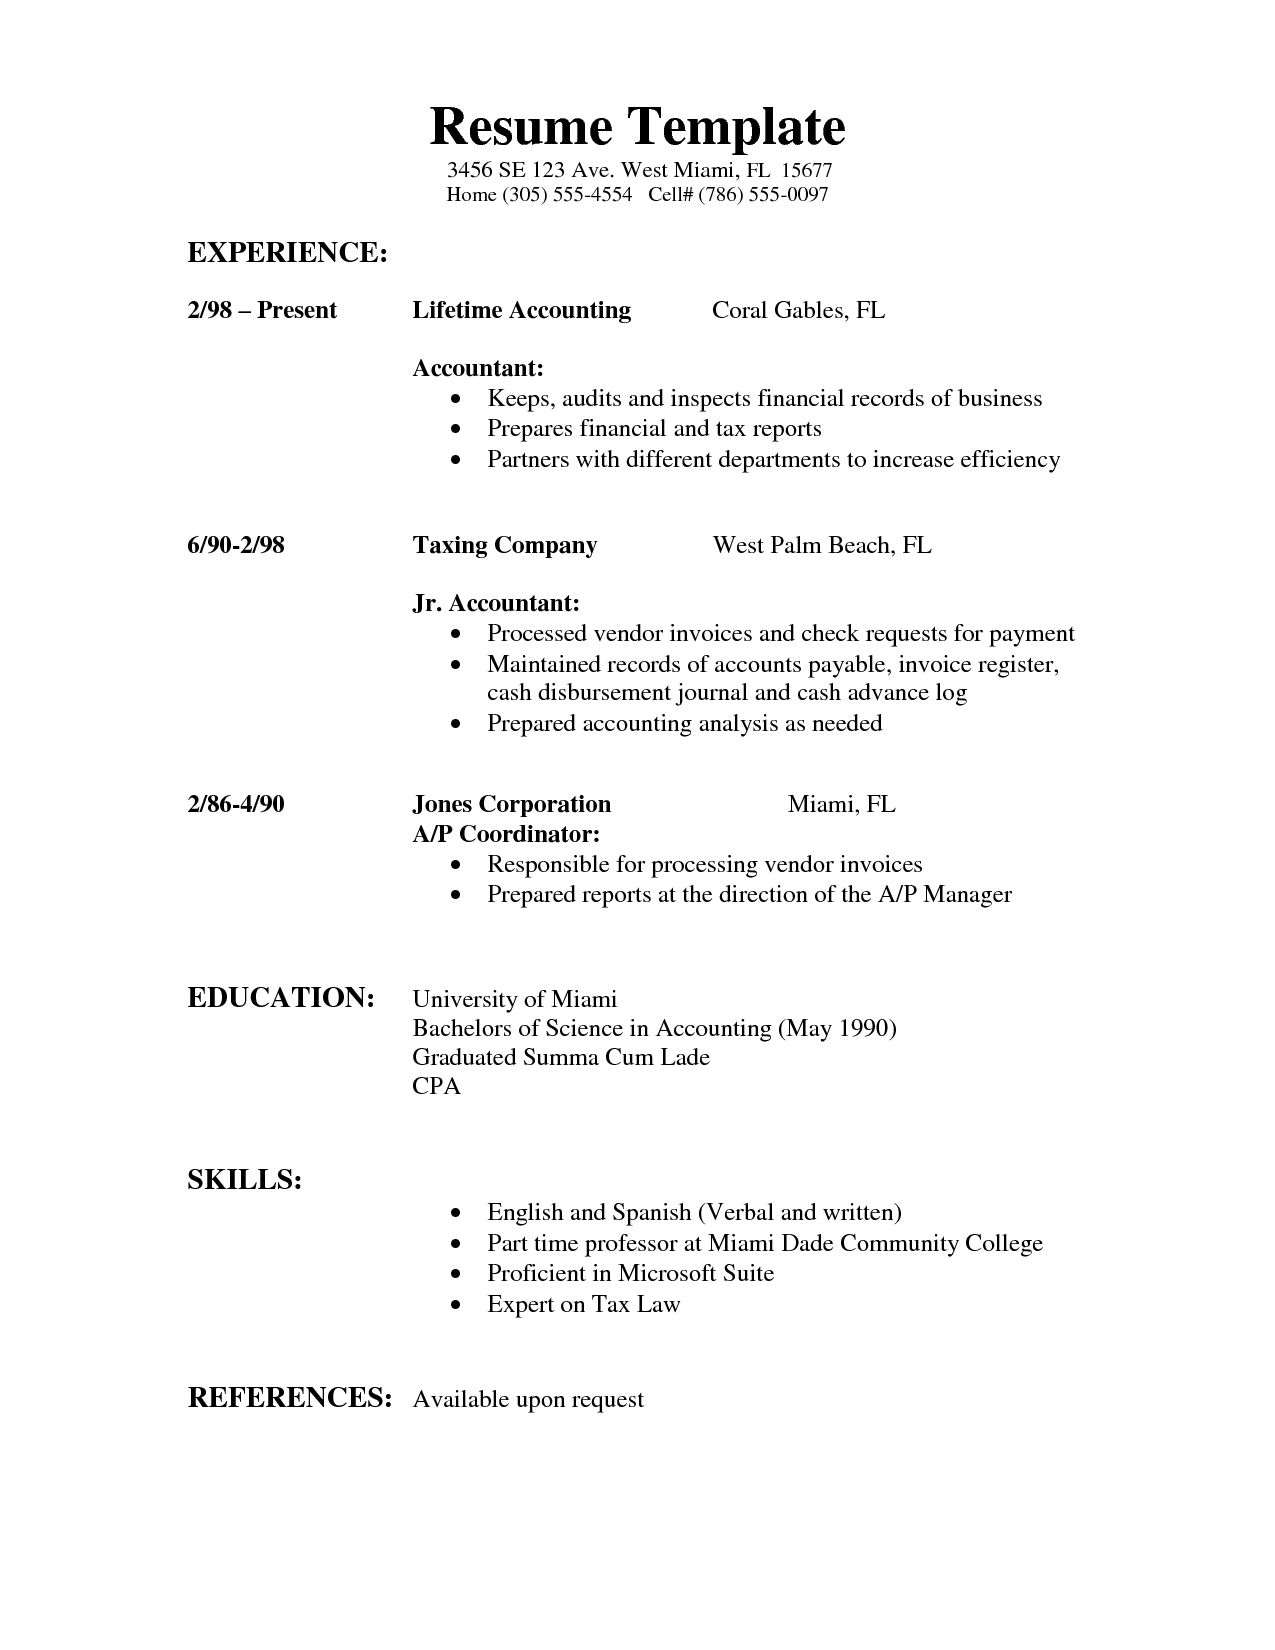 Sample Of Simple Resume Format L Andr Resume Examples 3 Letter And Resume